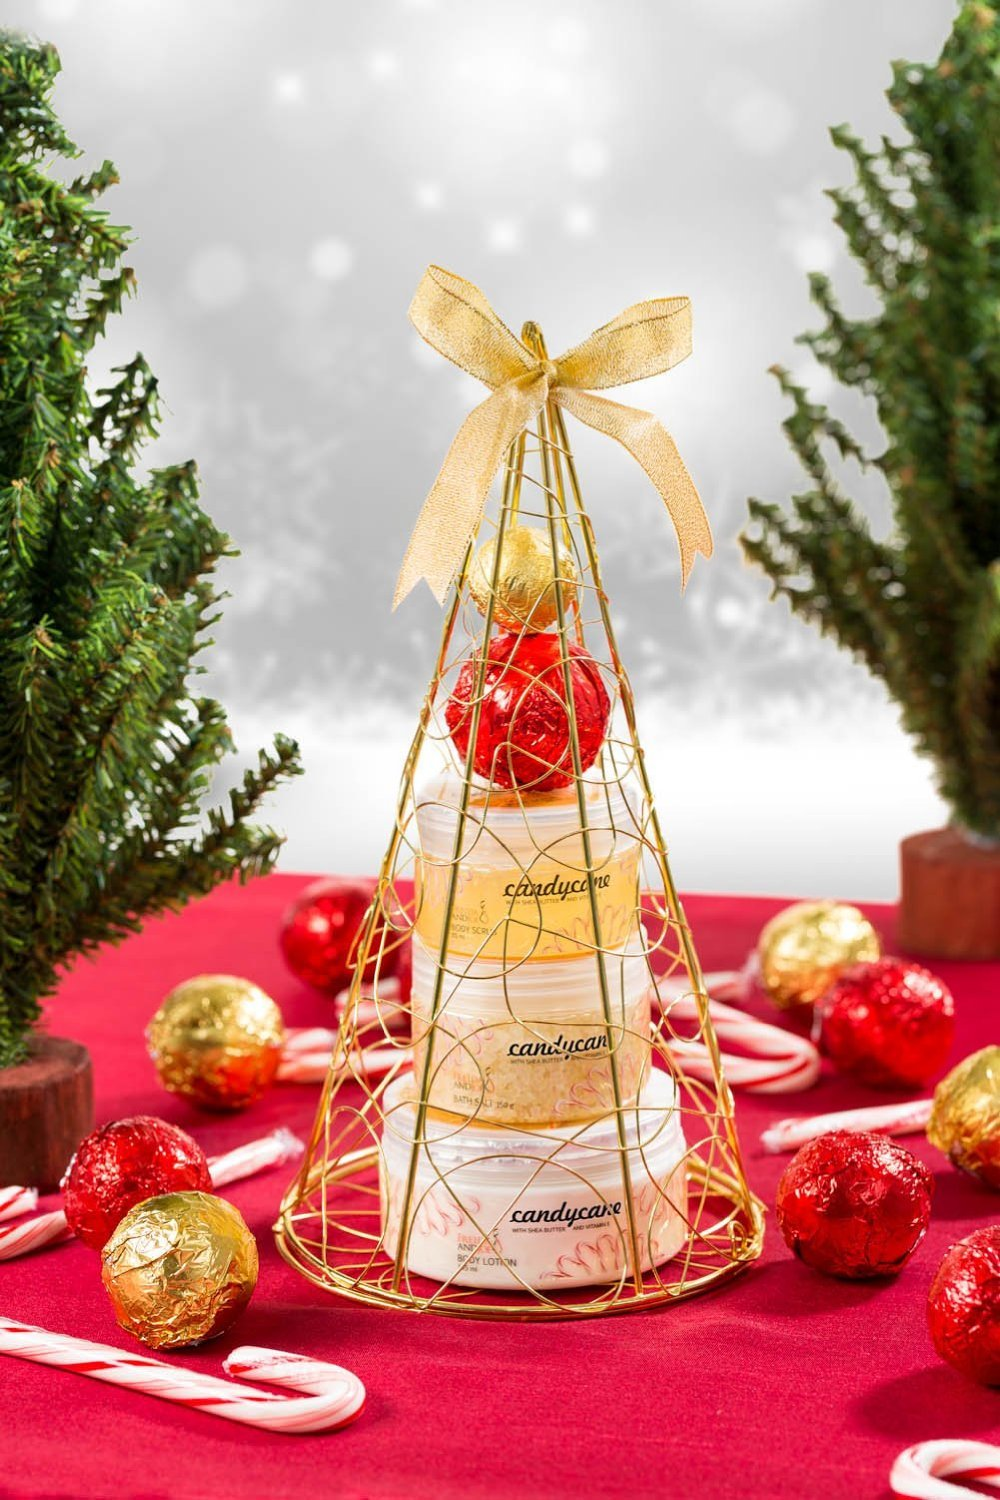 Christmas Holiday Spa Bath & Body Gift Set Candy Cane Peppermint Holiday Fragrance Gold Christmas Tree Display Includes 2 Bath Bombs, Body Lotion, Shower Gel, Bath Salt Bath Spa Basket Gift for Her